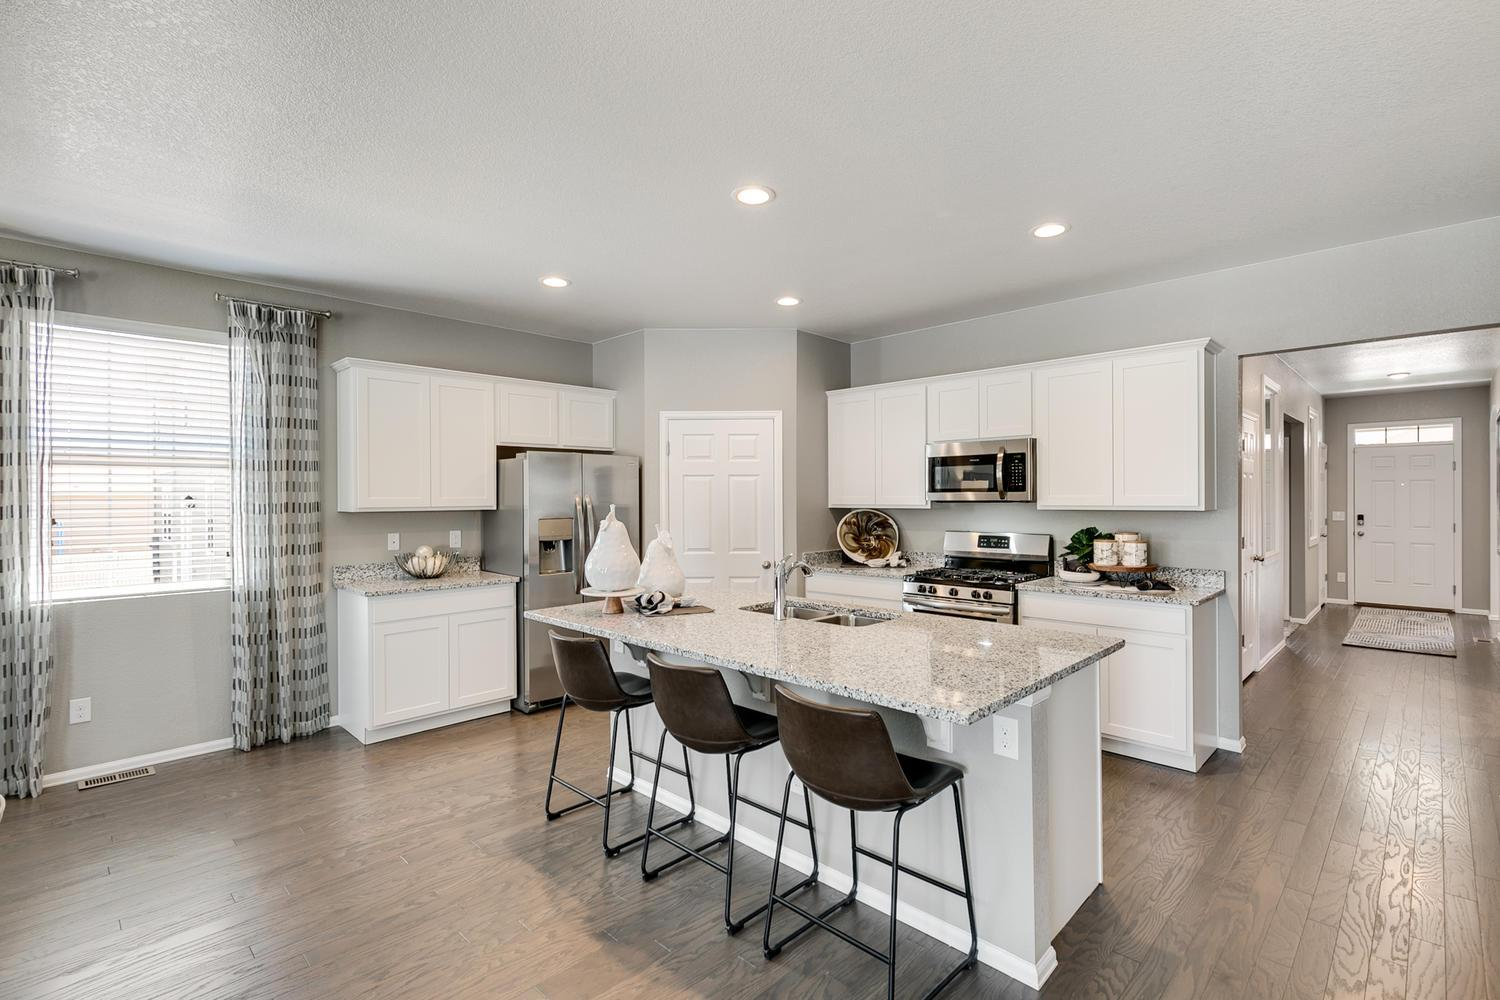 Kitchen featured in the CALI By D.R. Horton in Denver, CO